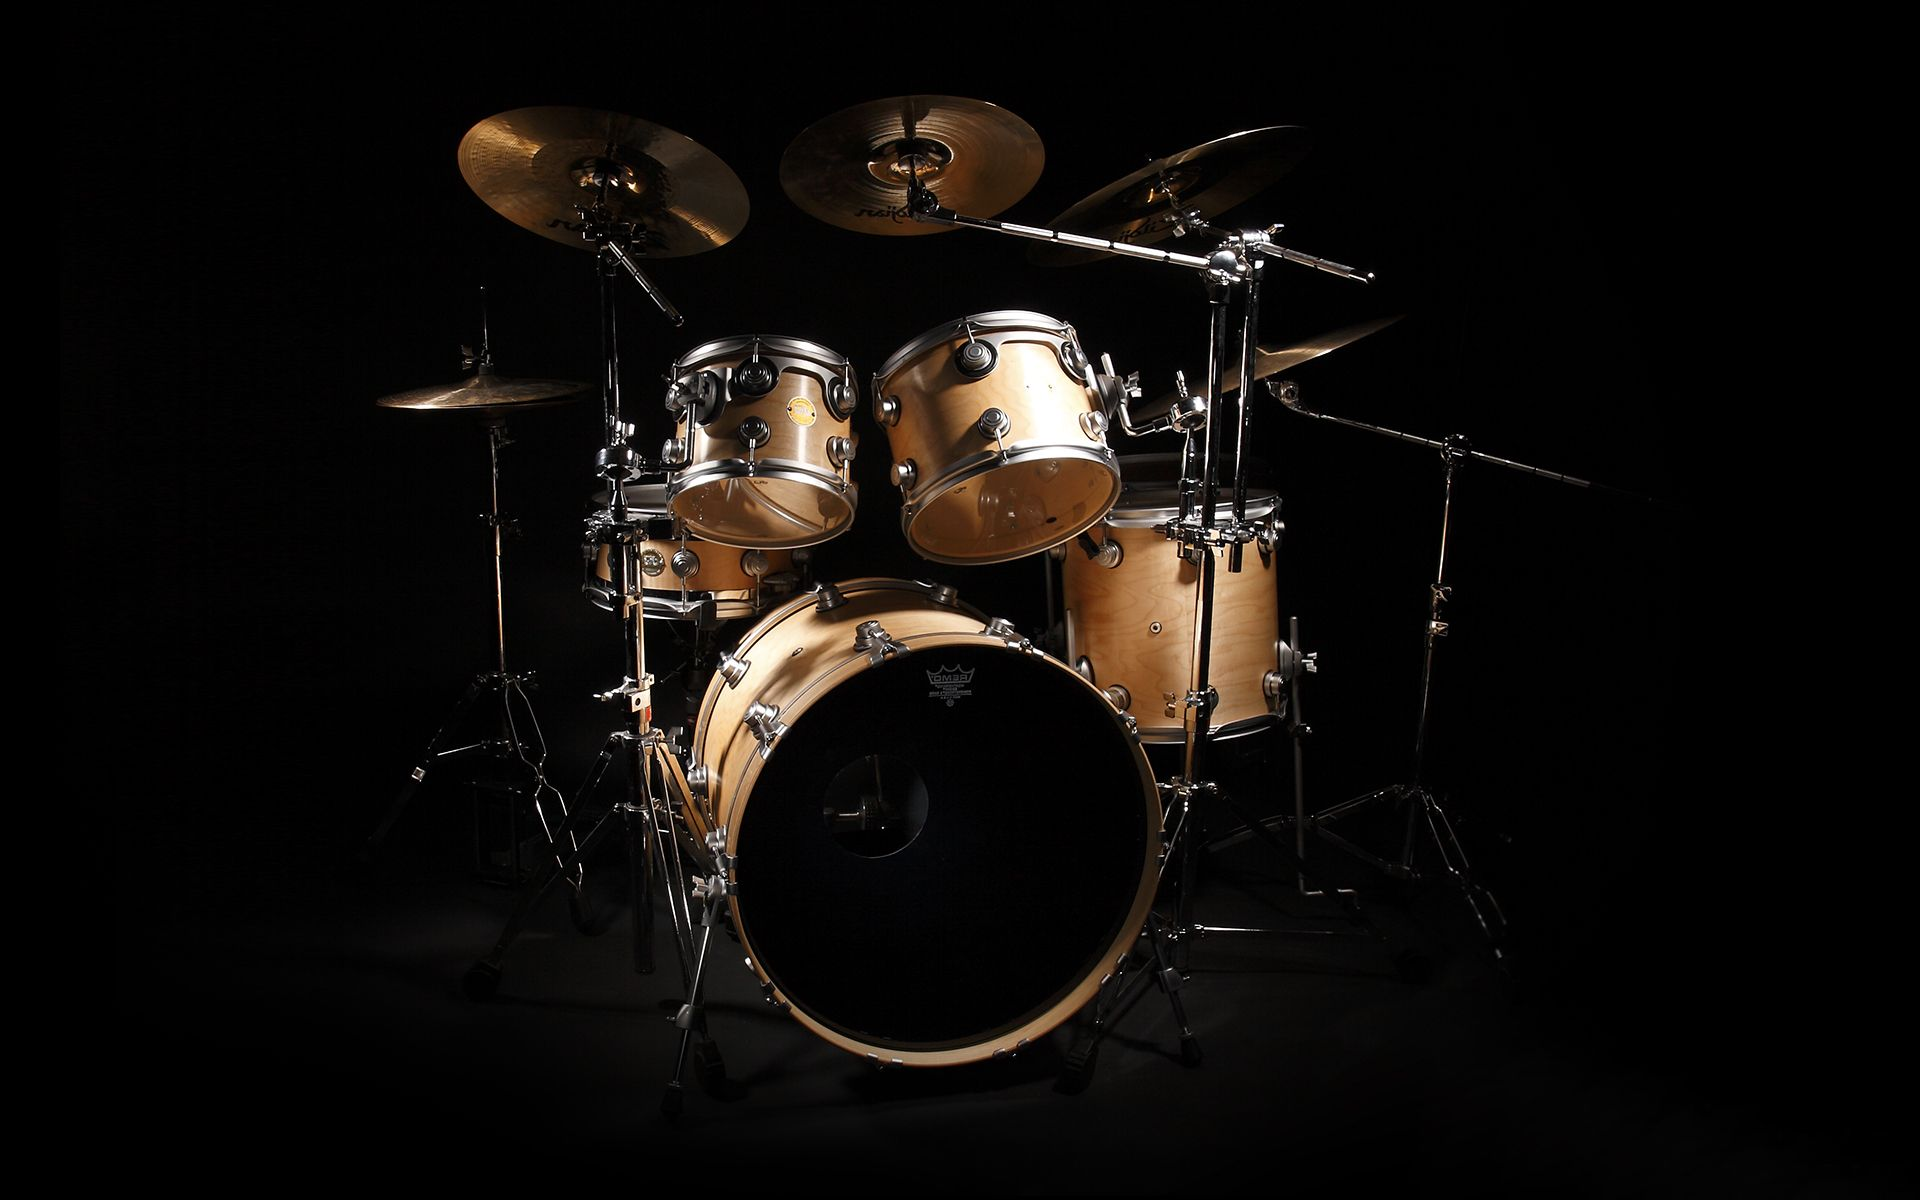 Drum Set HD Wallpaper